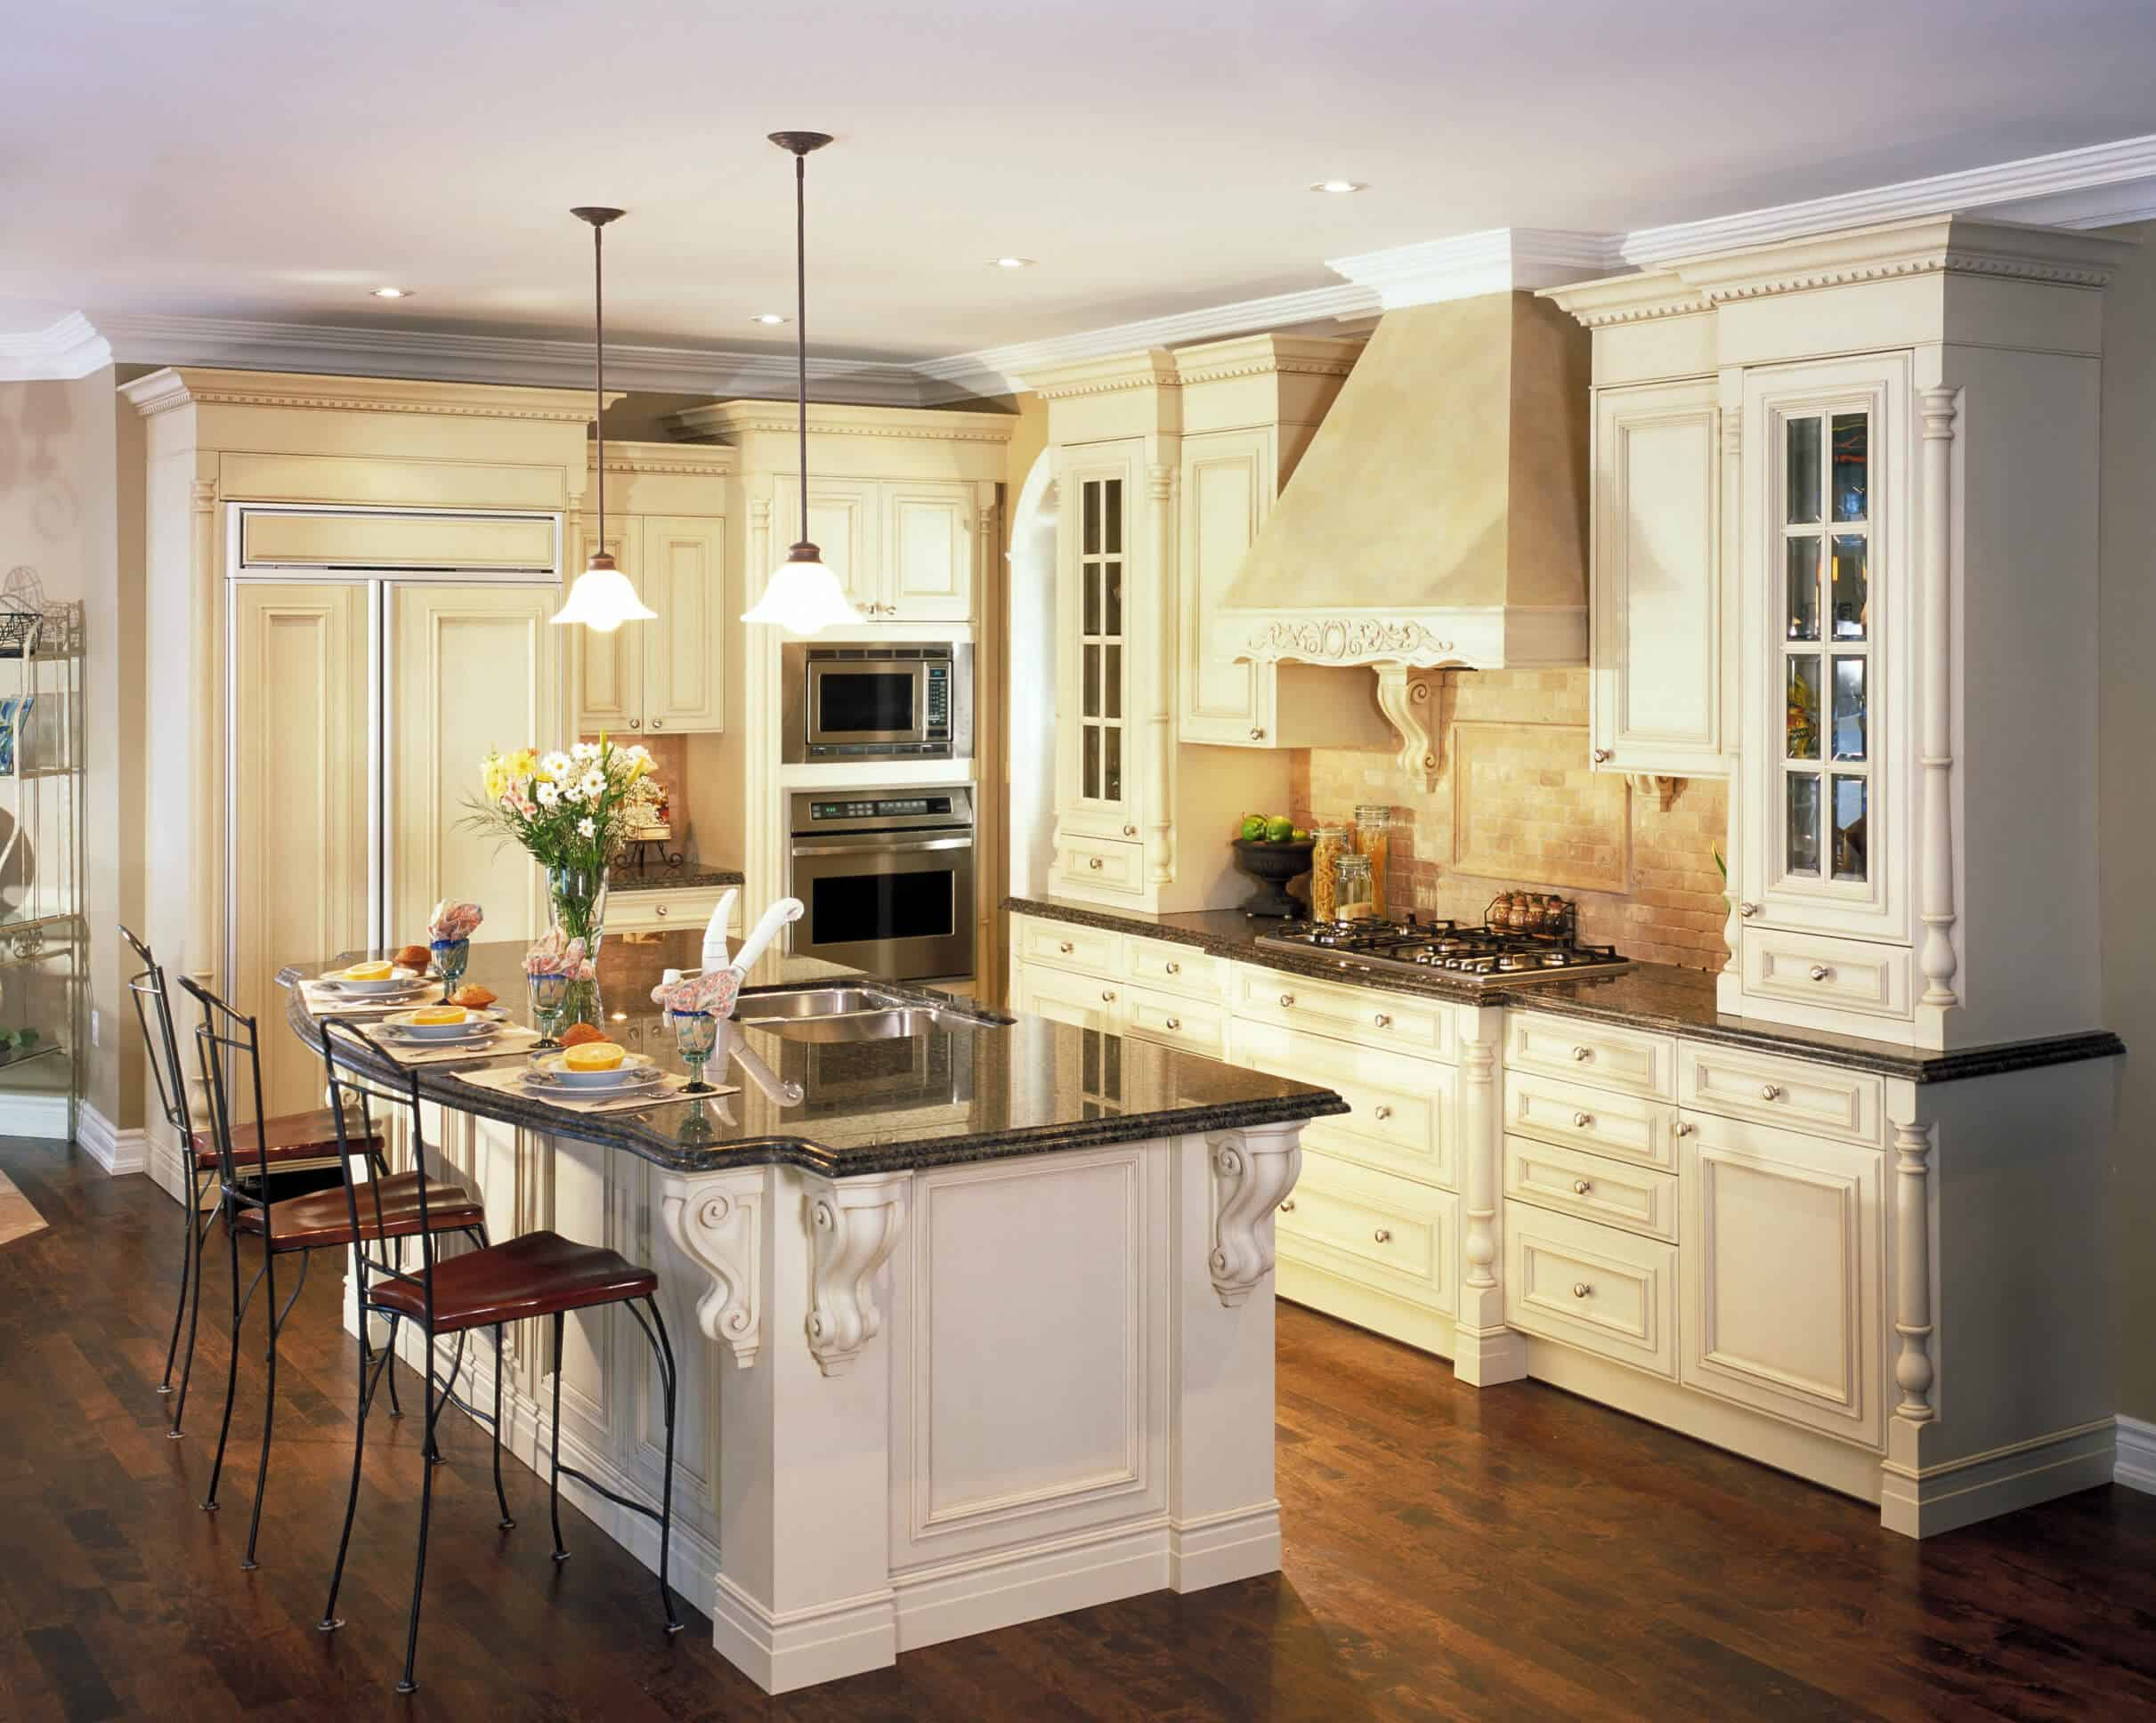 101 Traditional Kitchen Ideas (Photos) on cream and walnut kitchens, cream and brick kitchens, cream and black kitchens, cream and brown kitchens,